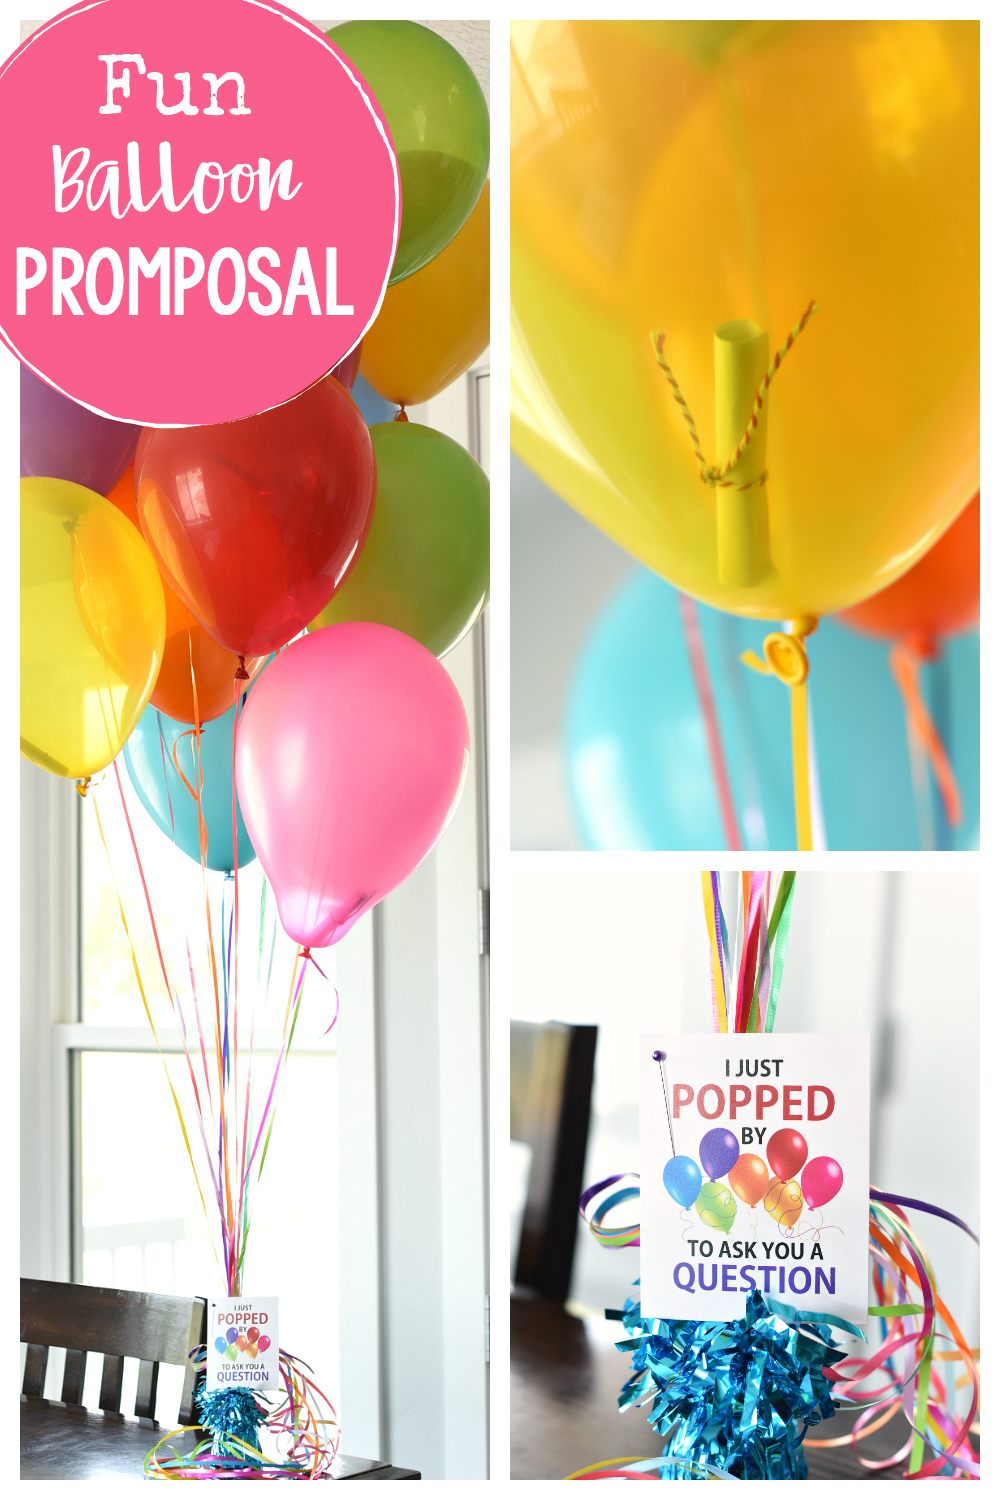 Fun Balloon Promposal for Homecoming, Prom or any Dance! A cute way to ask someone to a dance, fill the balloons with papers-one of them asks the question but they've got to pop them to find the right one. #homecoming #promposal #prom #highschool